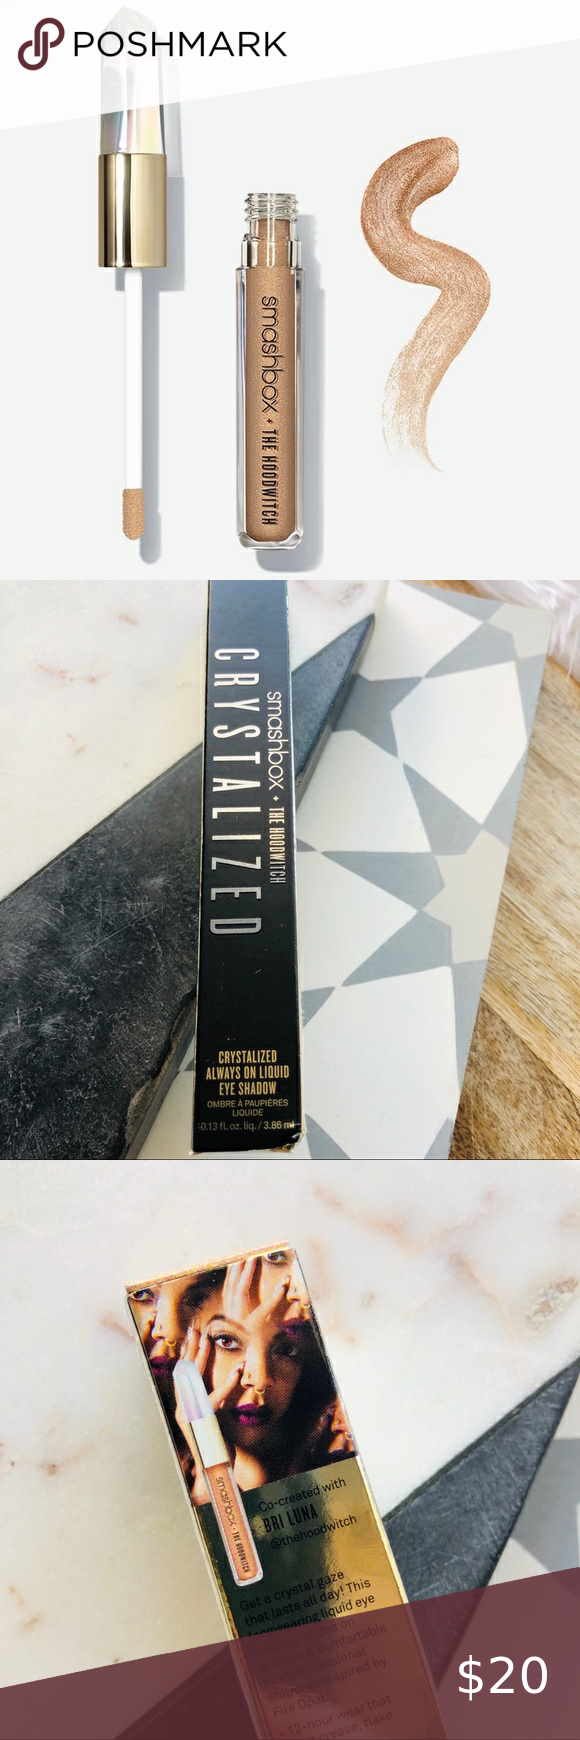 Smashbox Crystalized Always Liquid Eye Shadow In 2020 Skin Wand Eyeshadow Smashbox Makeup